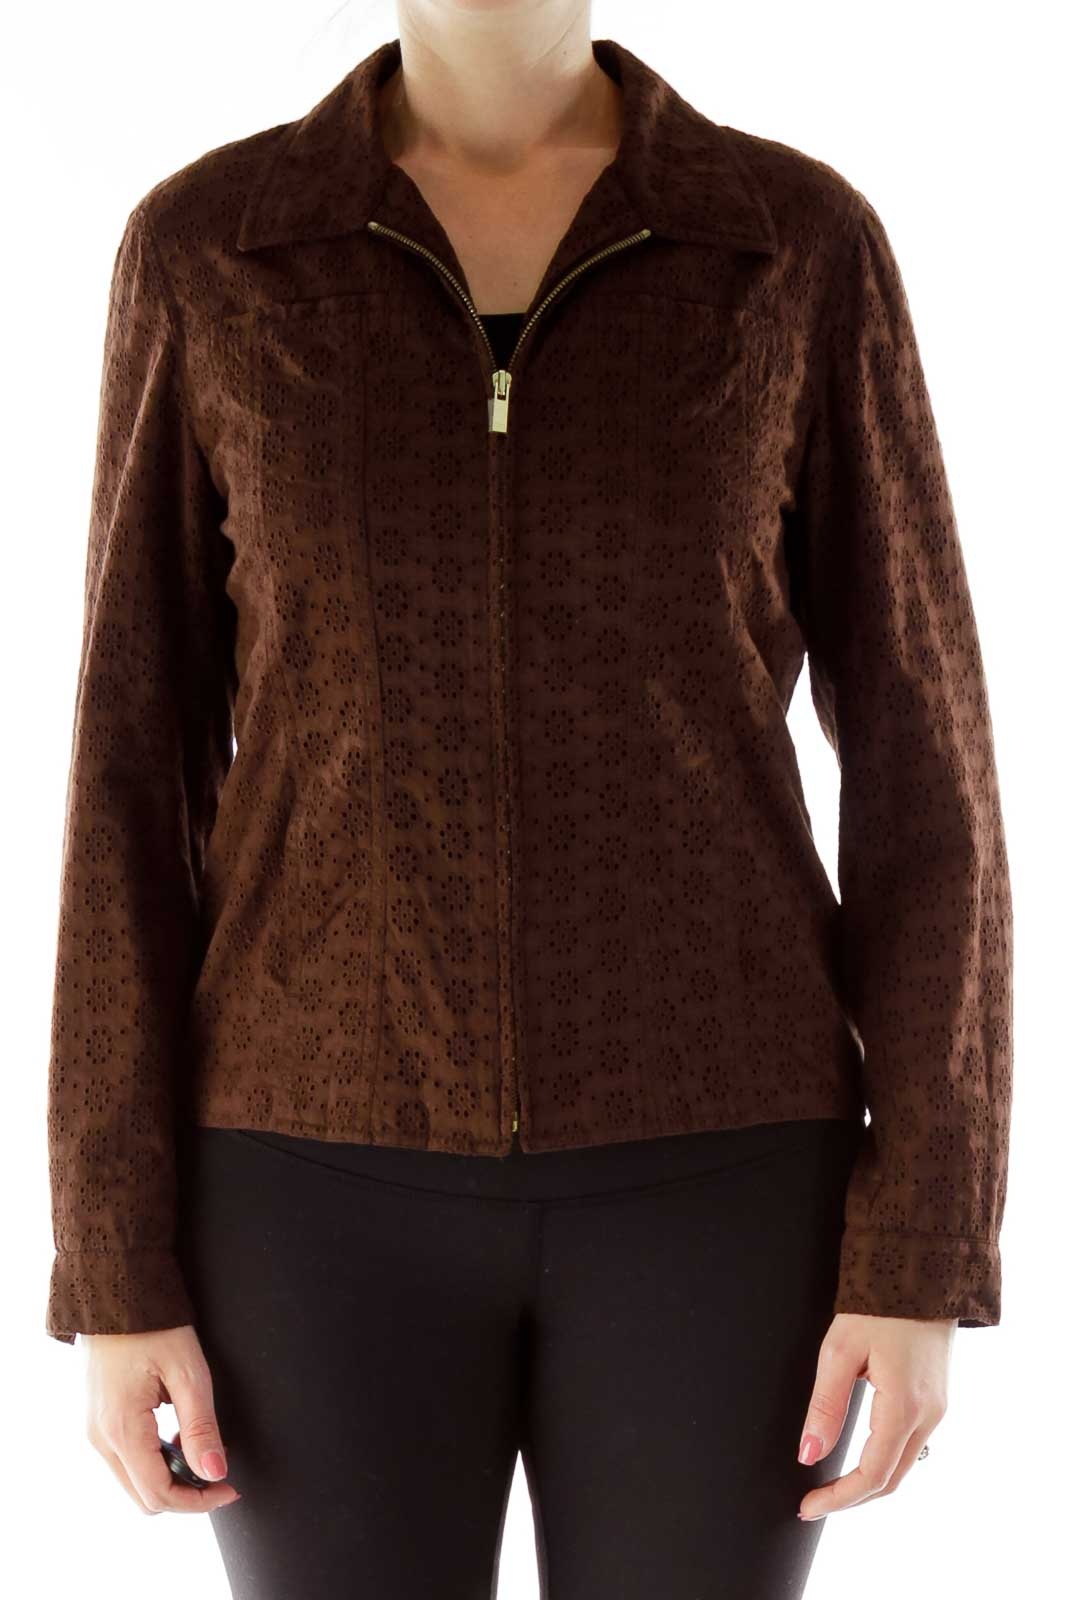 Brown Crocheted Zippered Jacket Front